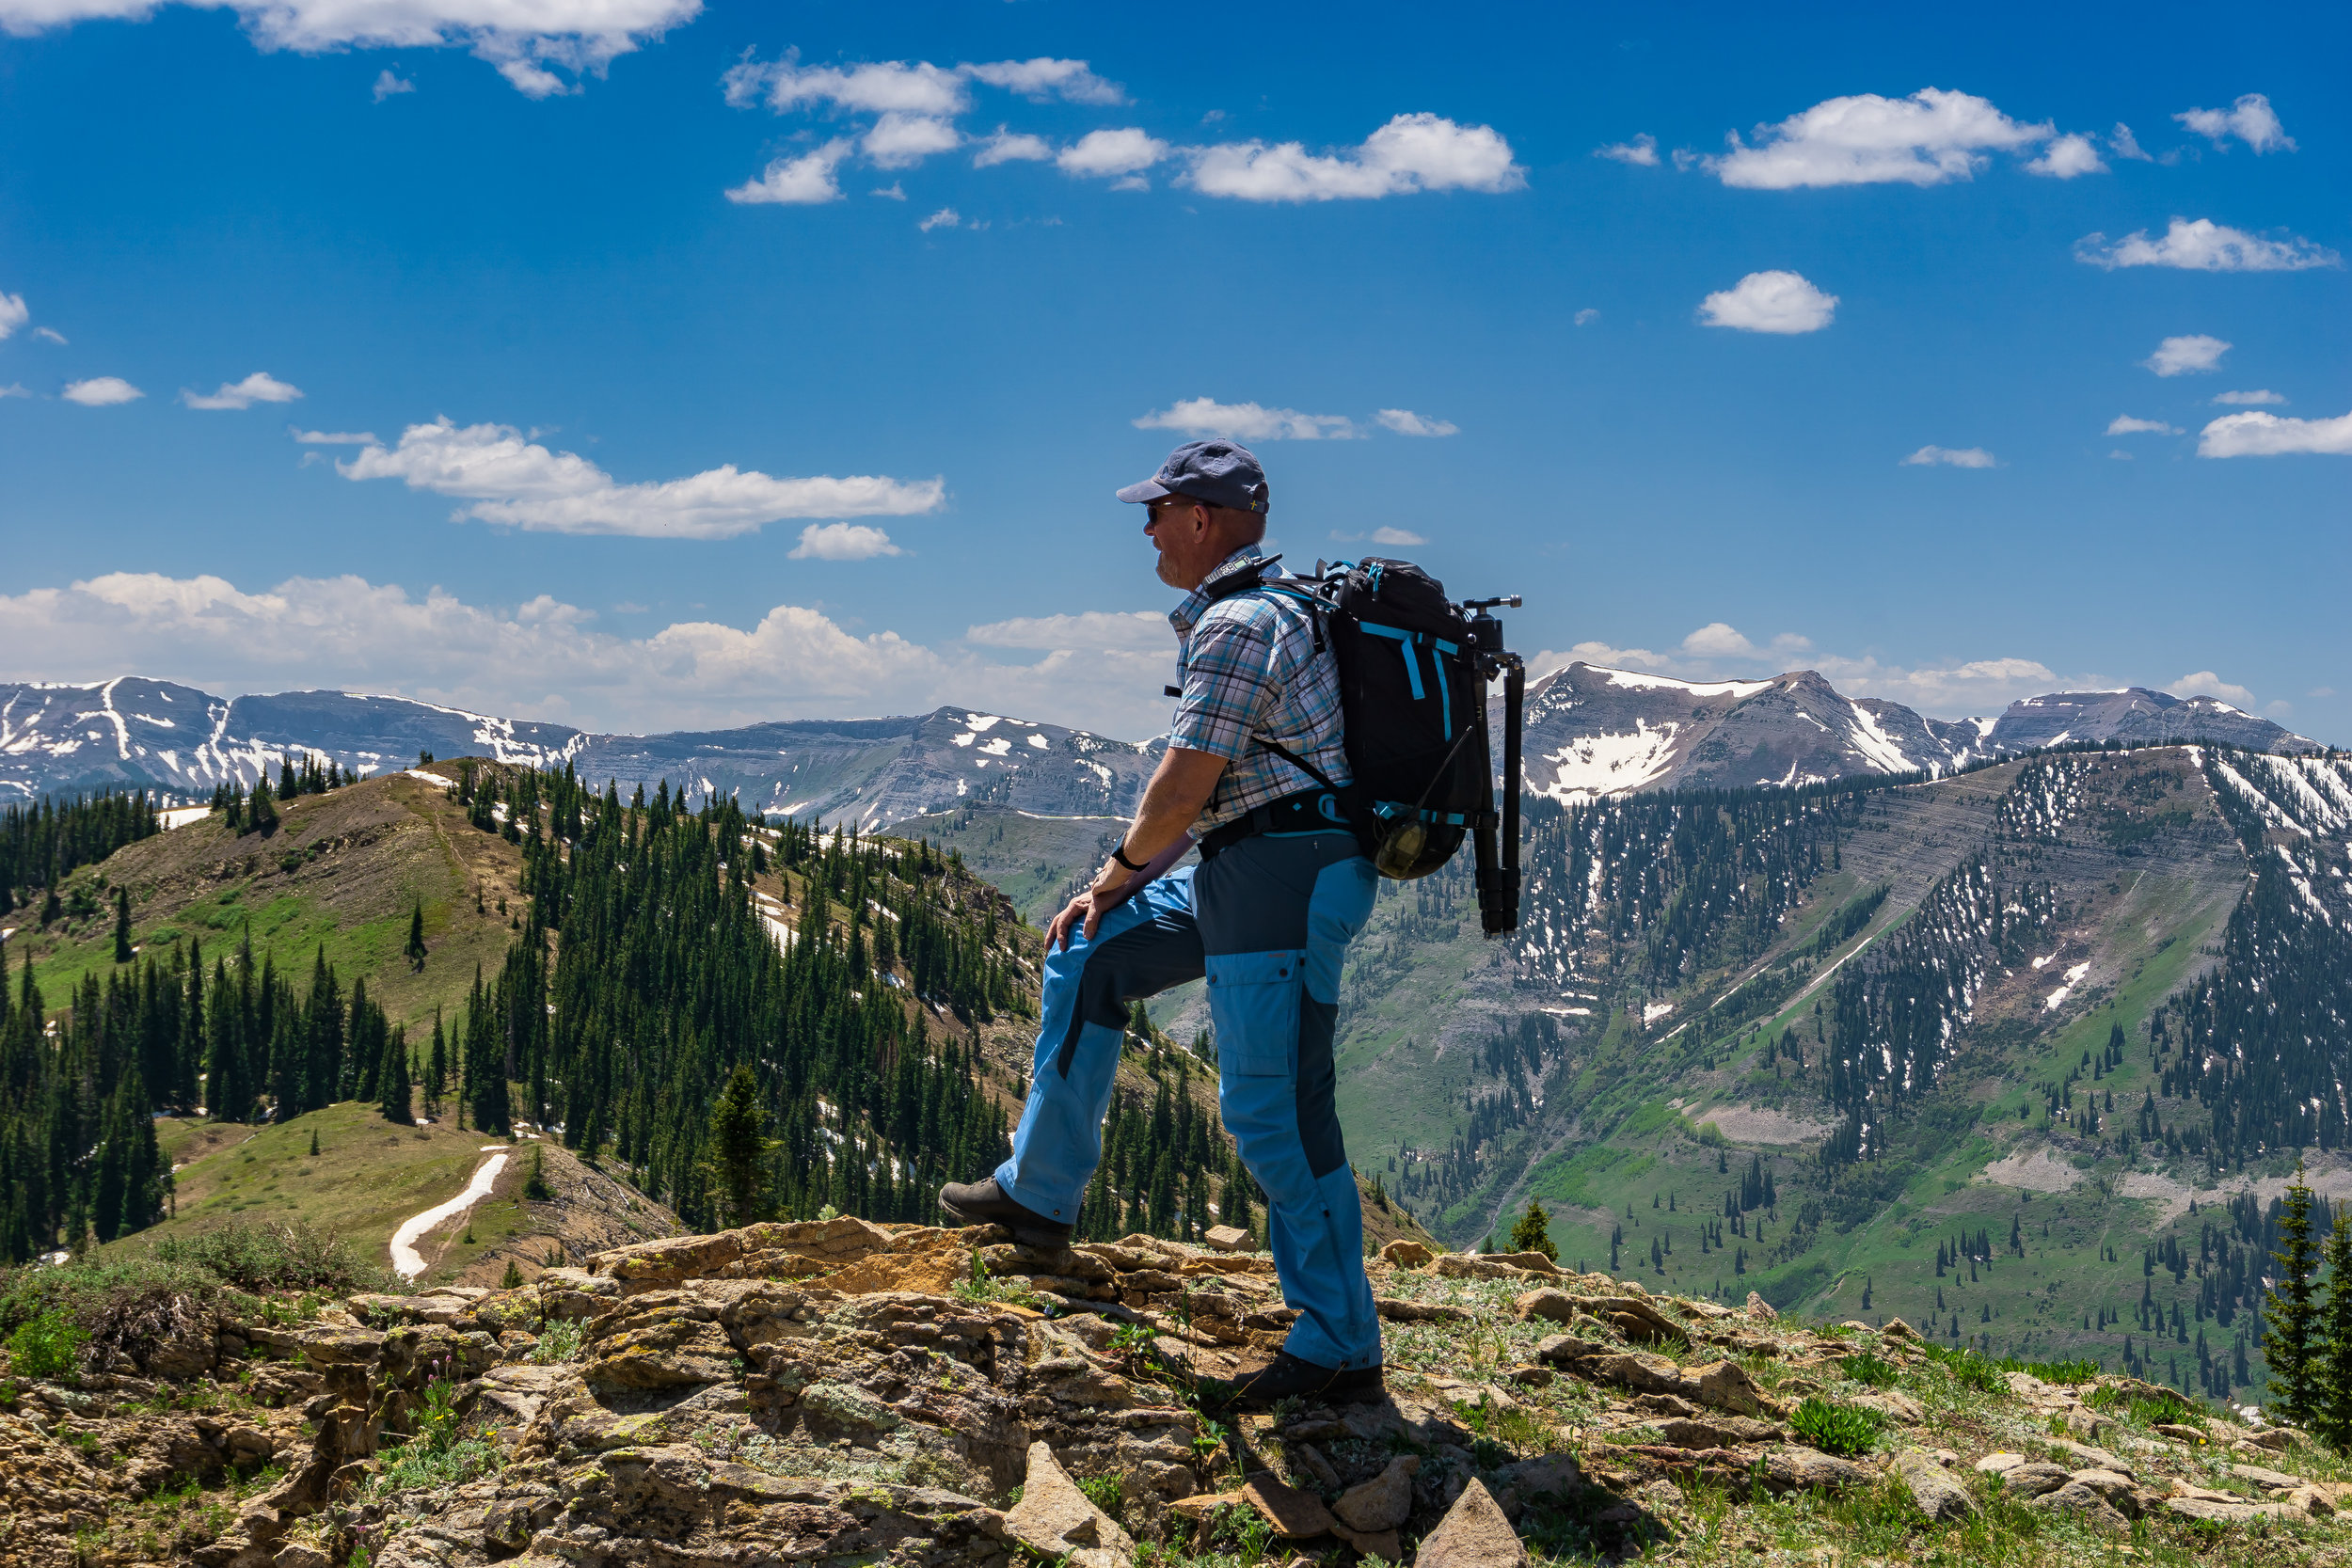 USKestrel Photography on Trail 403 above Crested Butte, CO, USA